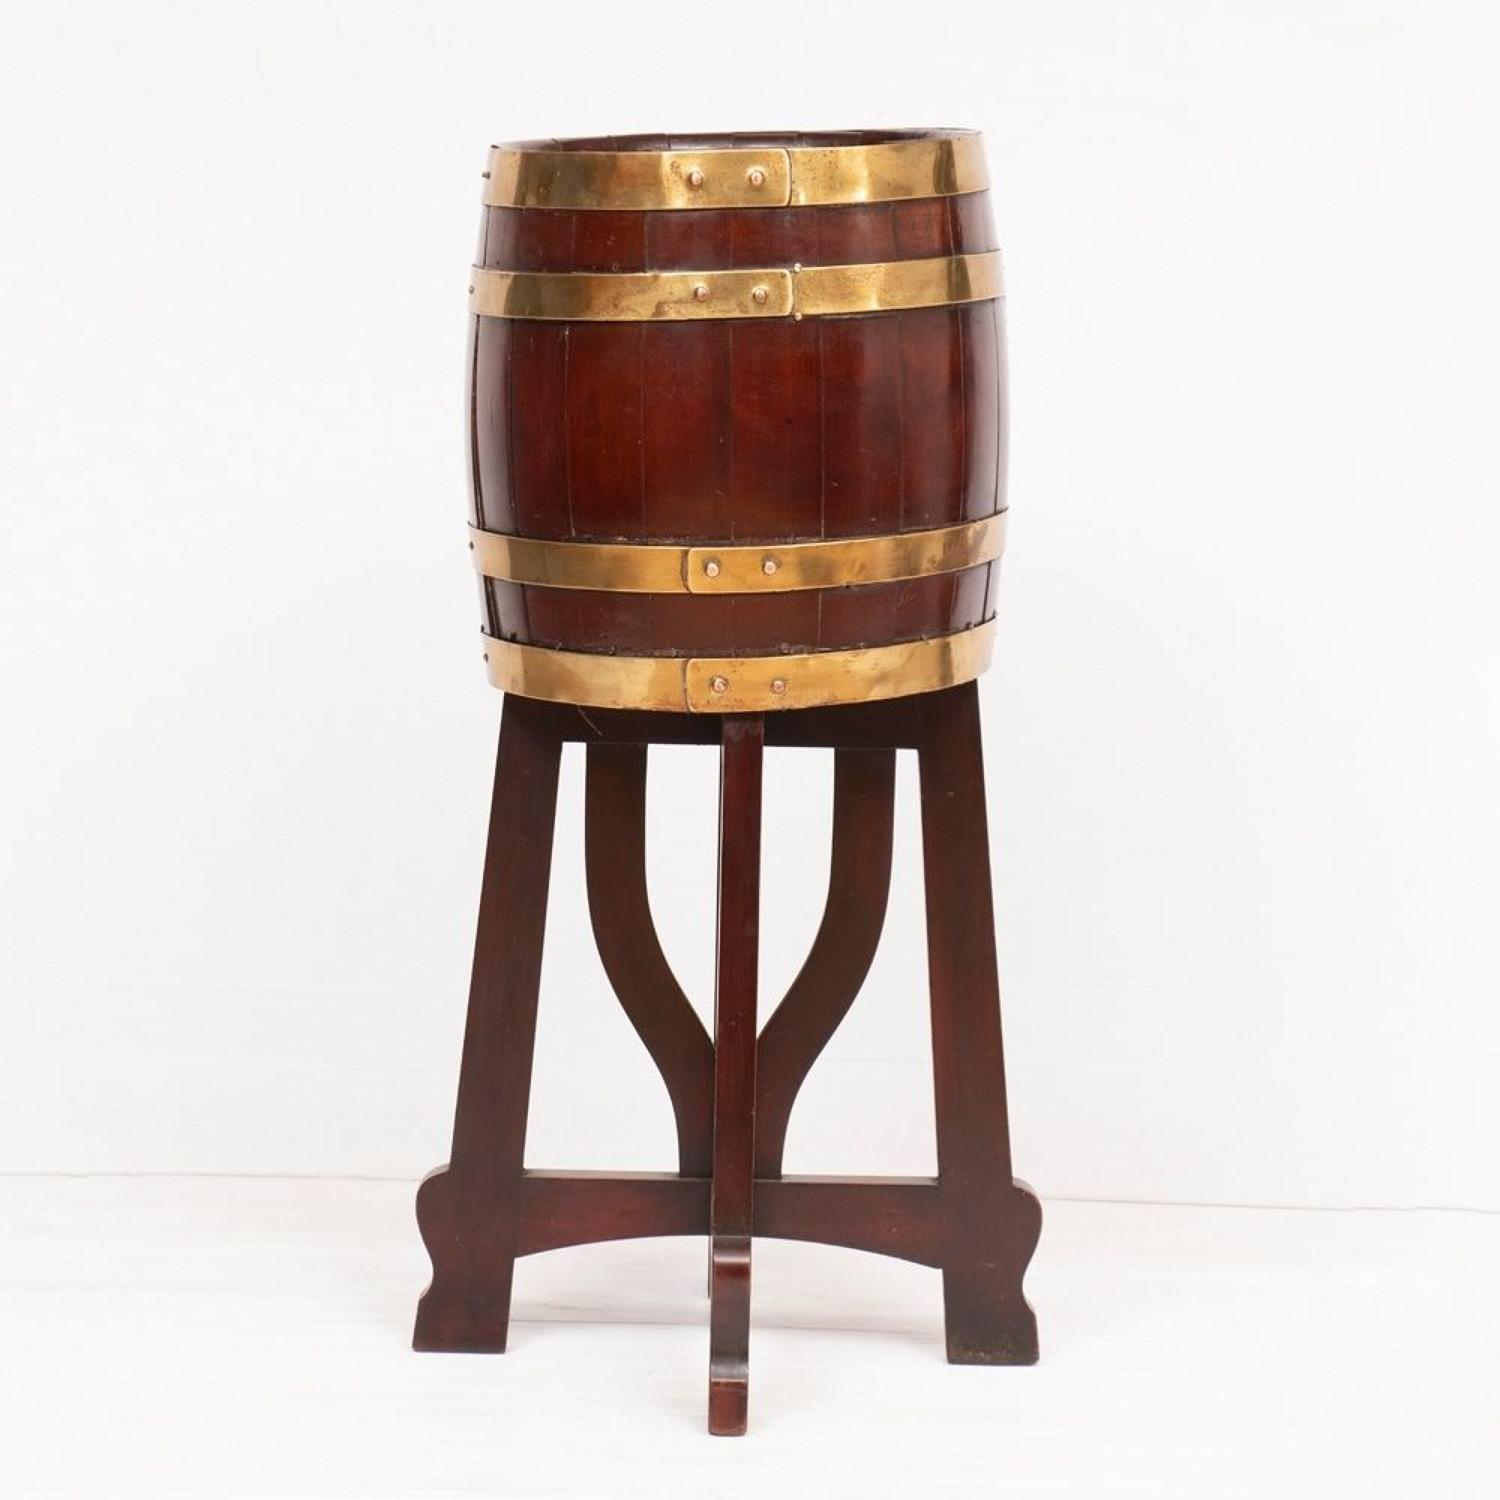 An Antique Irish Peat Barrel on Stand